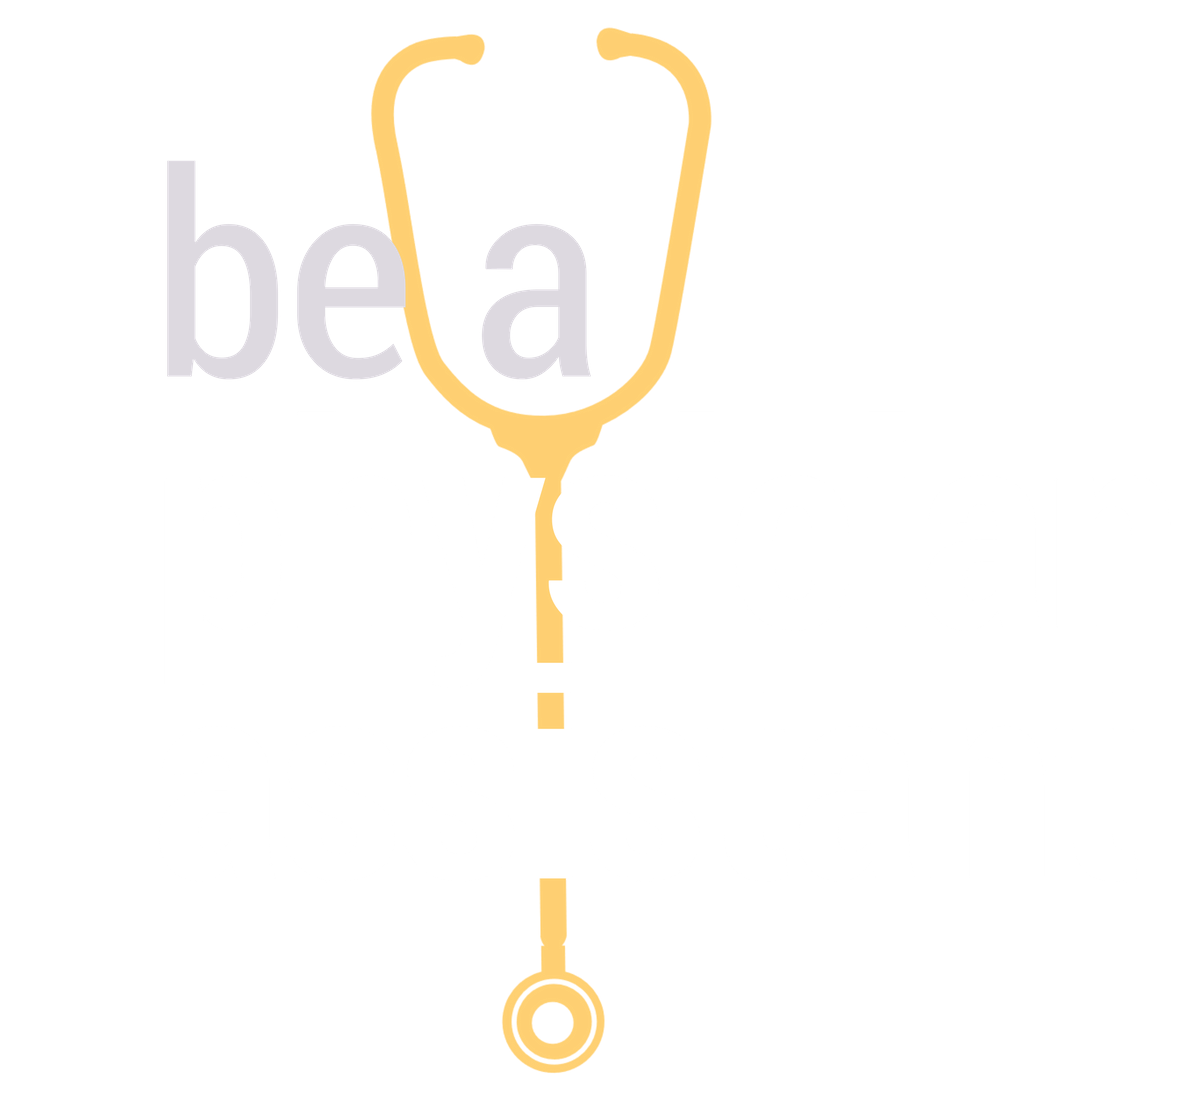 Be a Physician Assistant